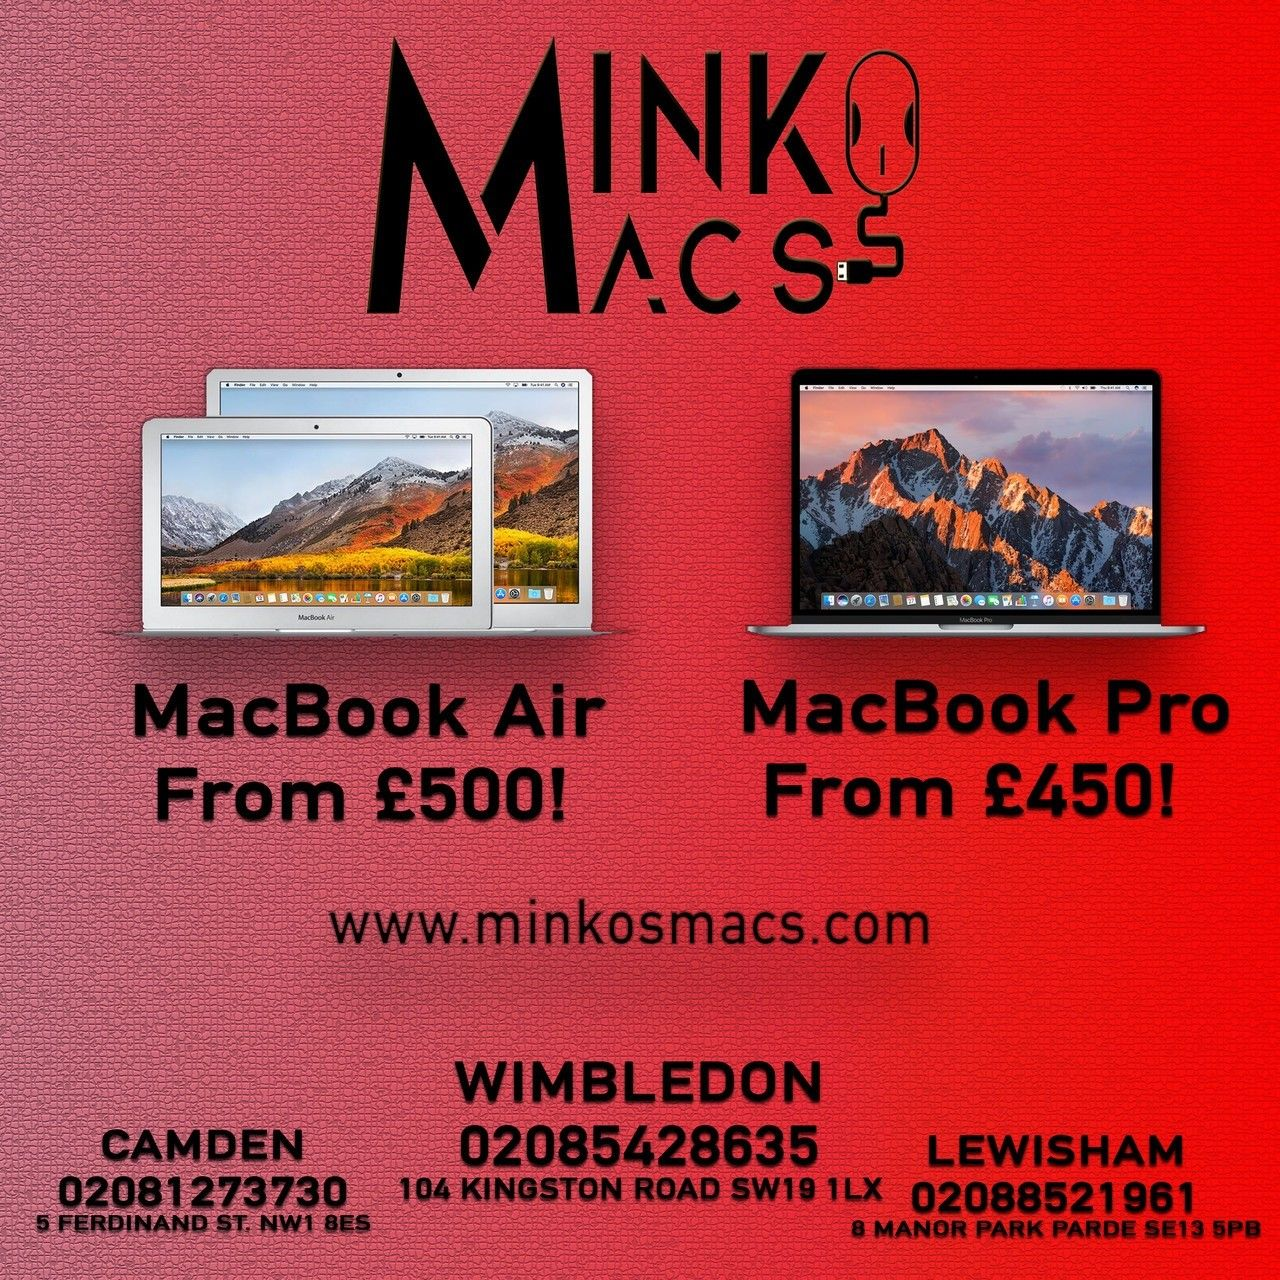 Need a new MacBook for the summer? Check out our MacBook